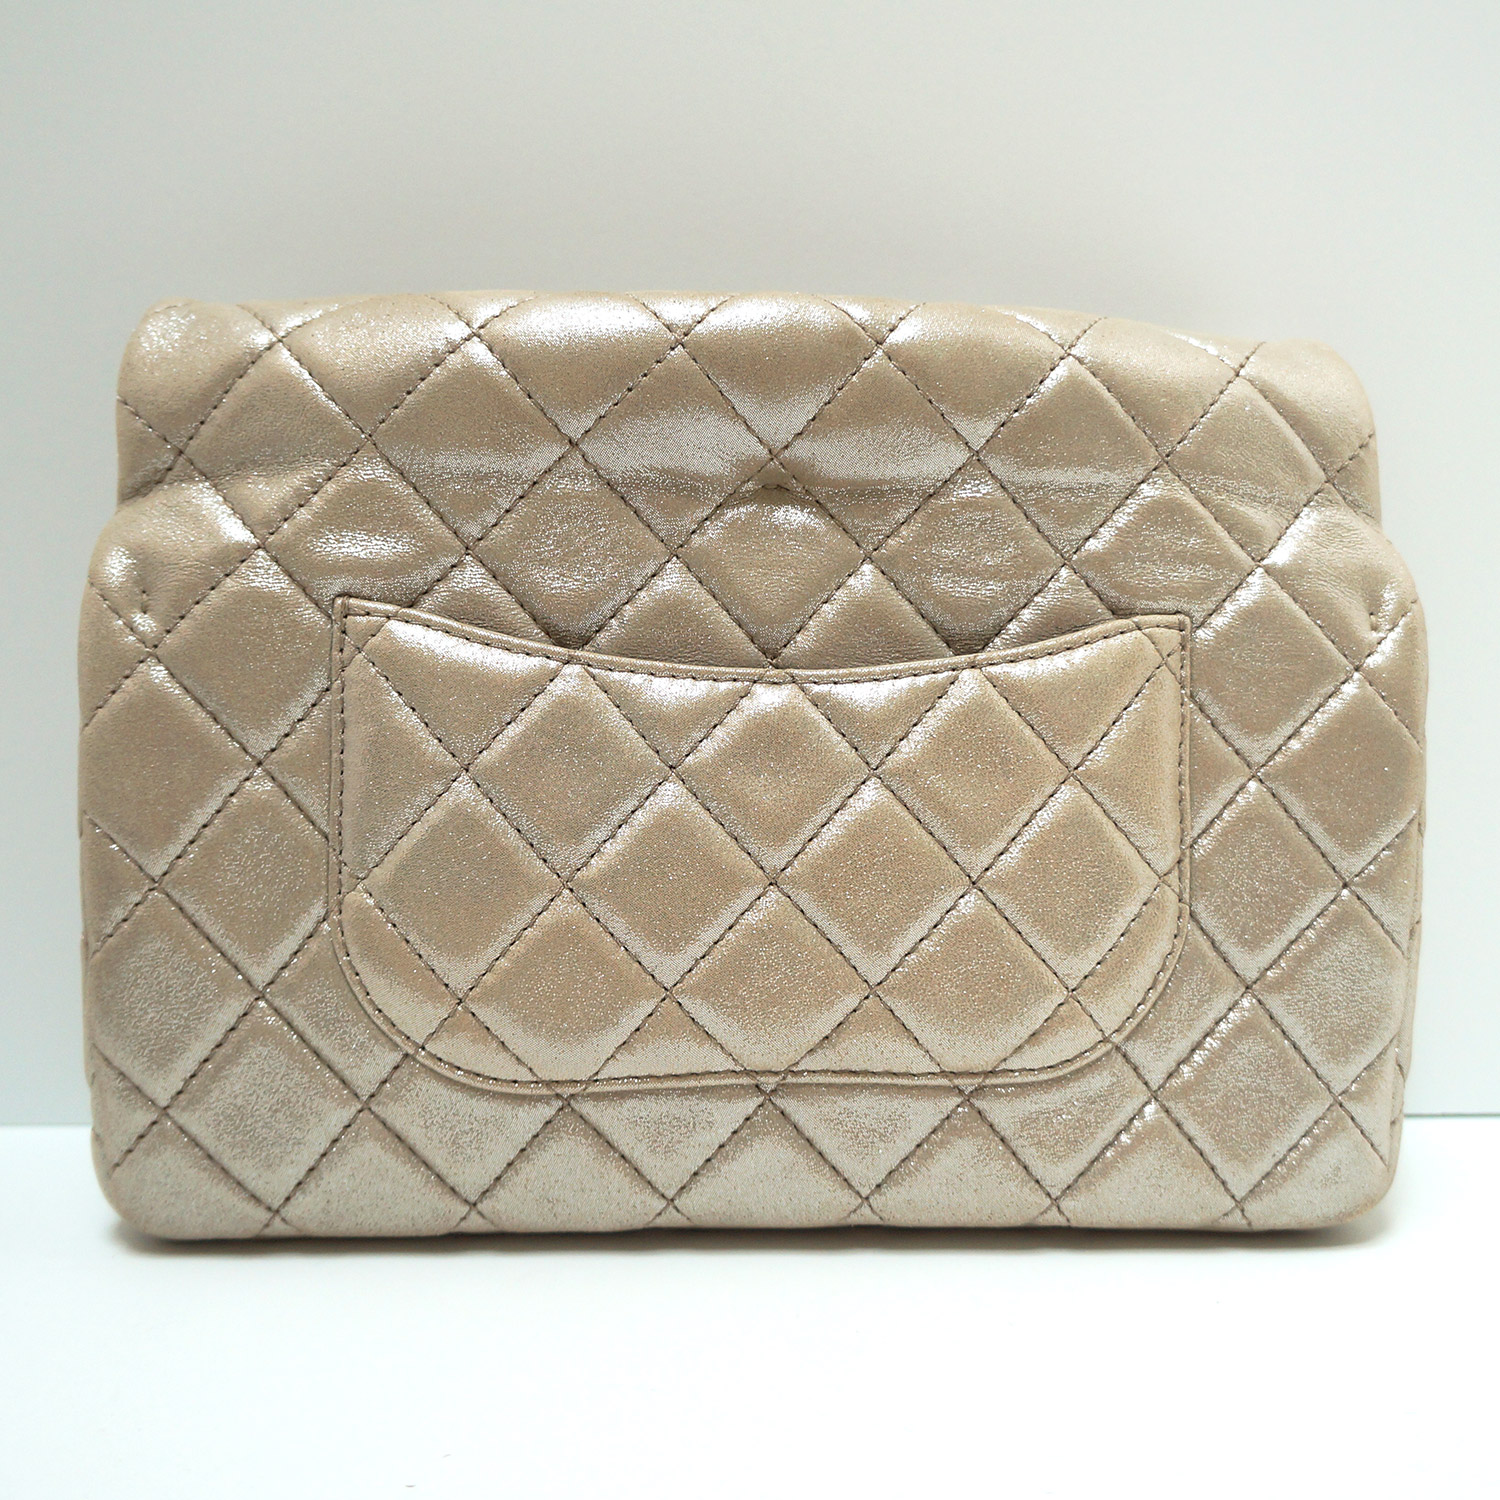 8a1cdd4c9e78 Chanel Light Gold Leather 2.55 Reissue Roll-top Clutch Bag | | My ...